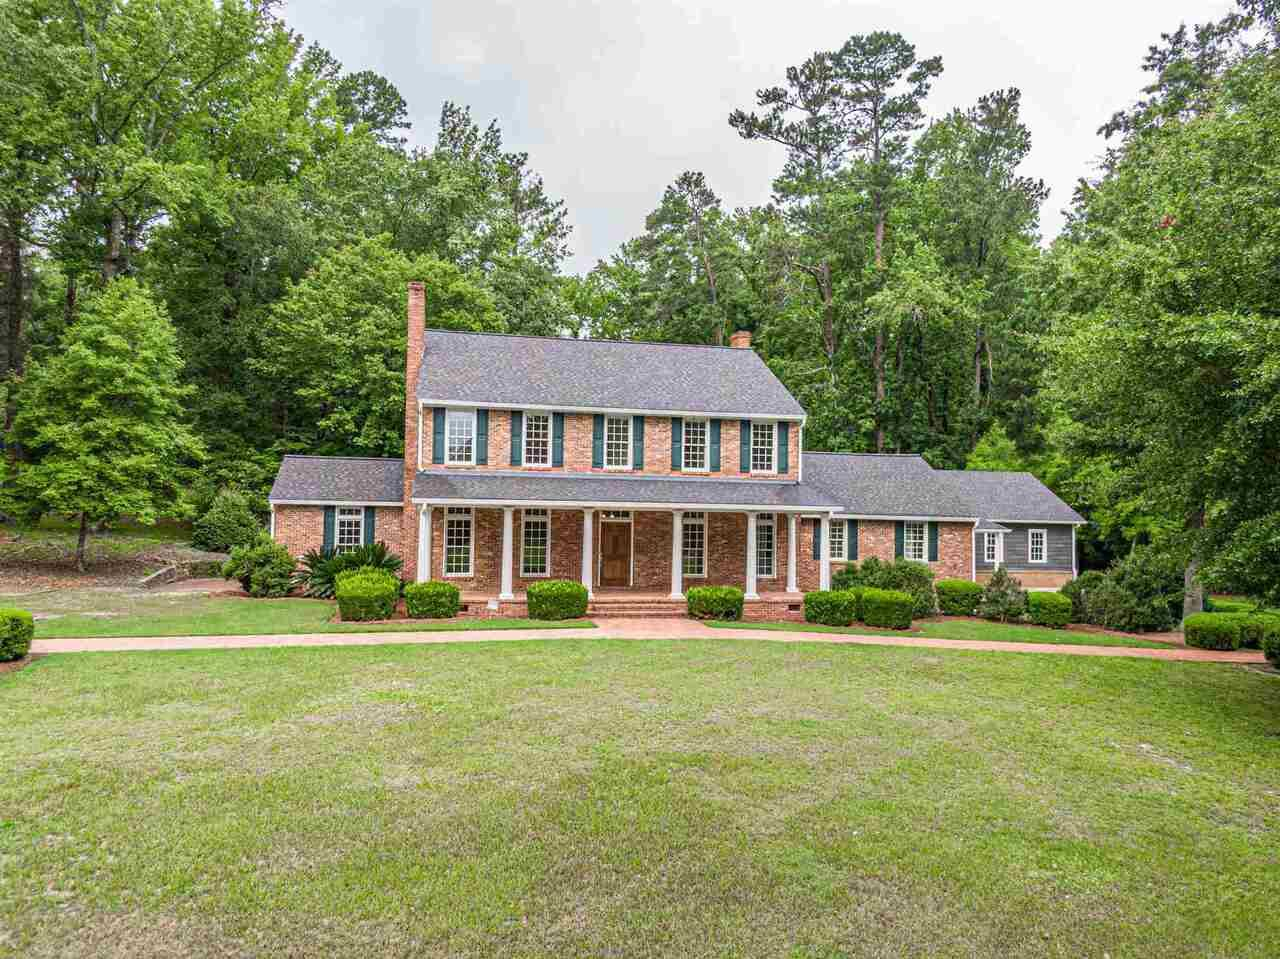 924 W Church St, Sandersville, GA 31082 - MLS#: 8817675